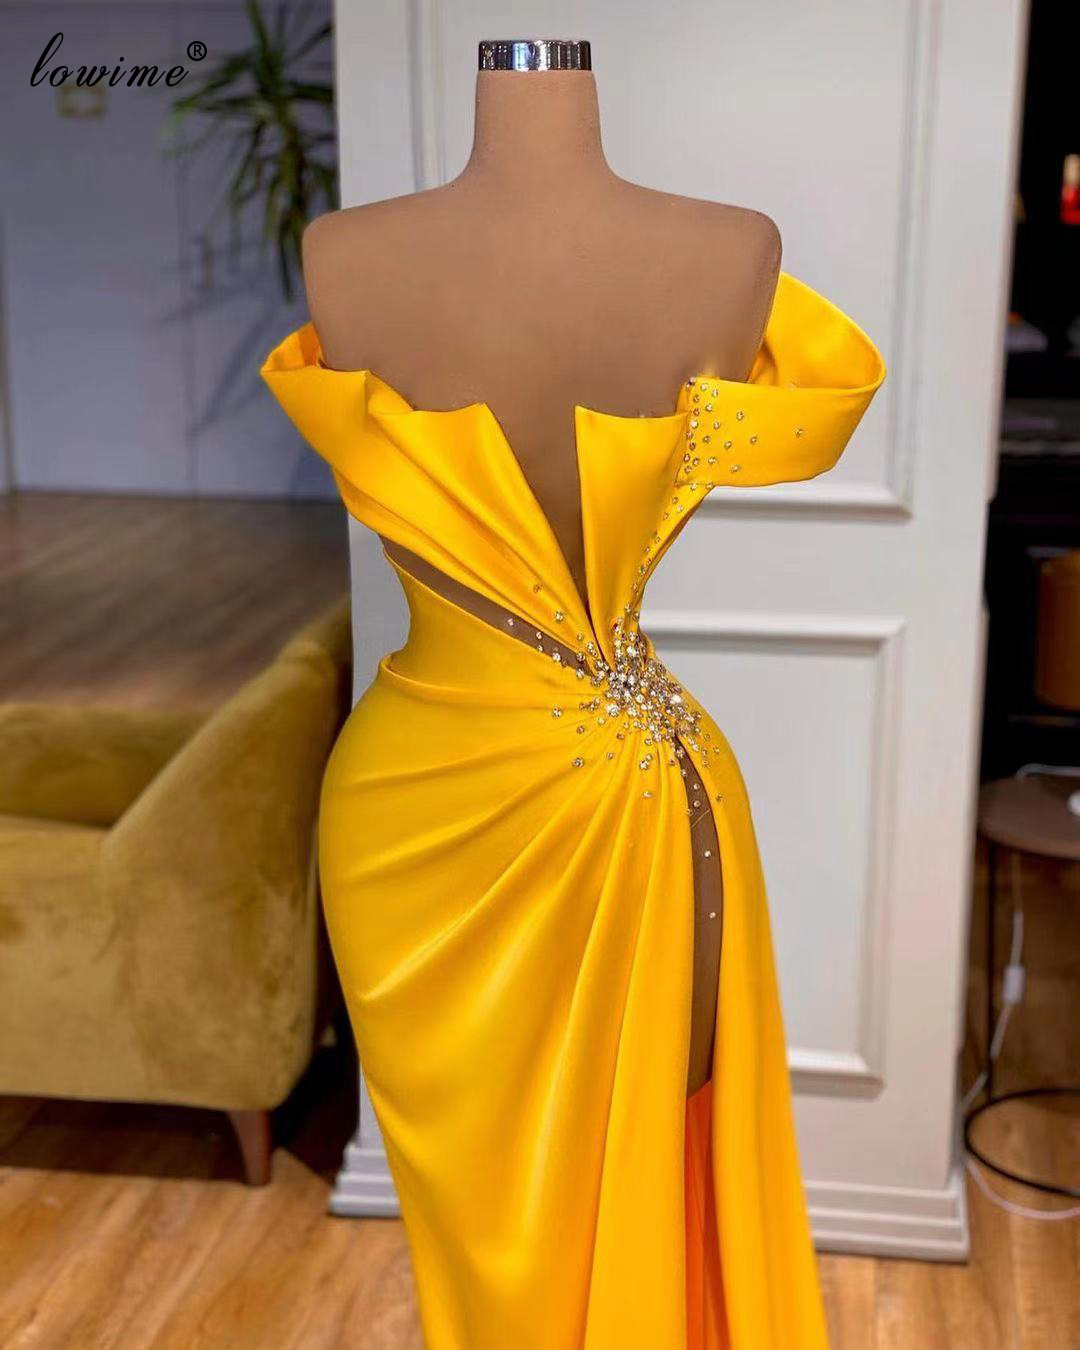 3 Designs Gold Celebrity Dresses With Beads Mermaid Kaftan Couture Long Evening Gowns For Women Party Dresses Suknie Wieczorowe